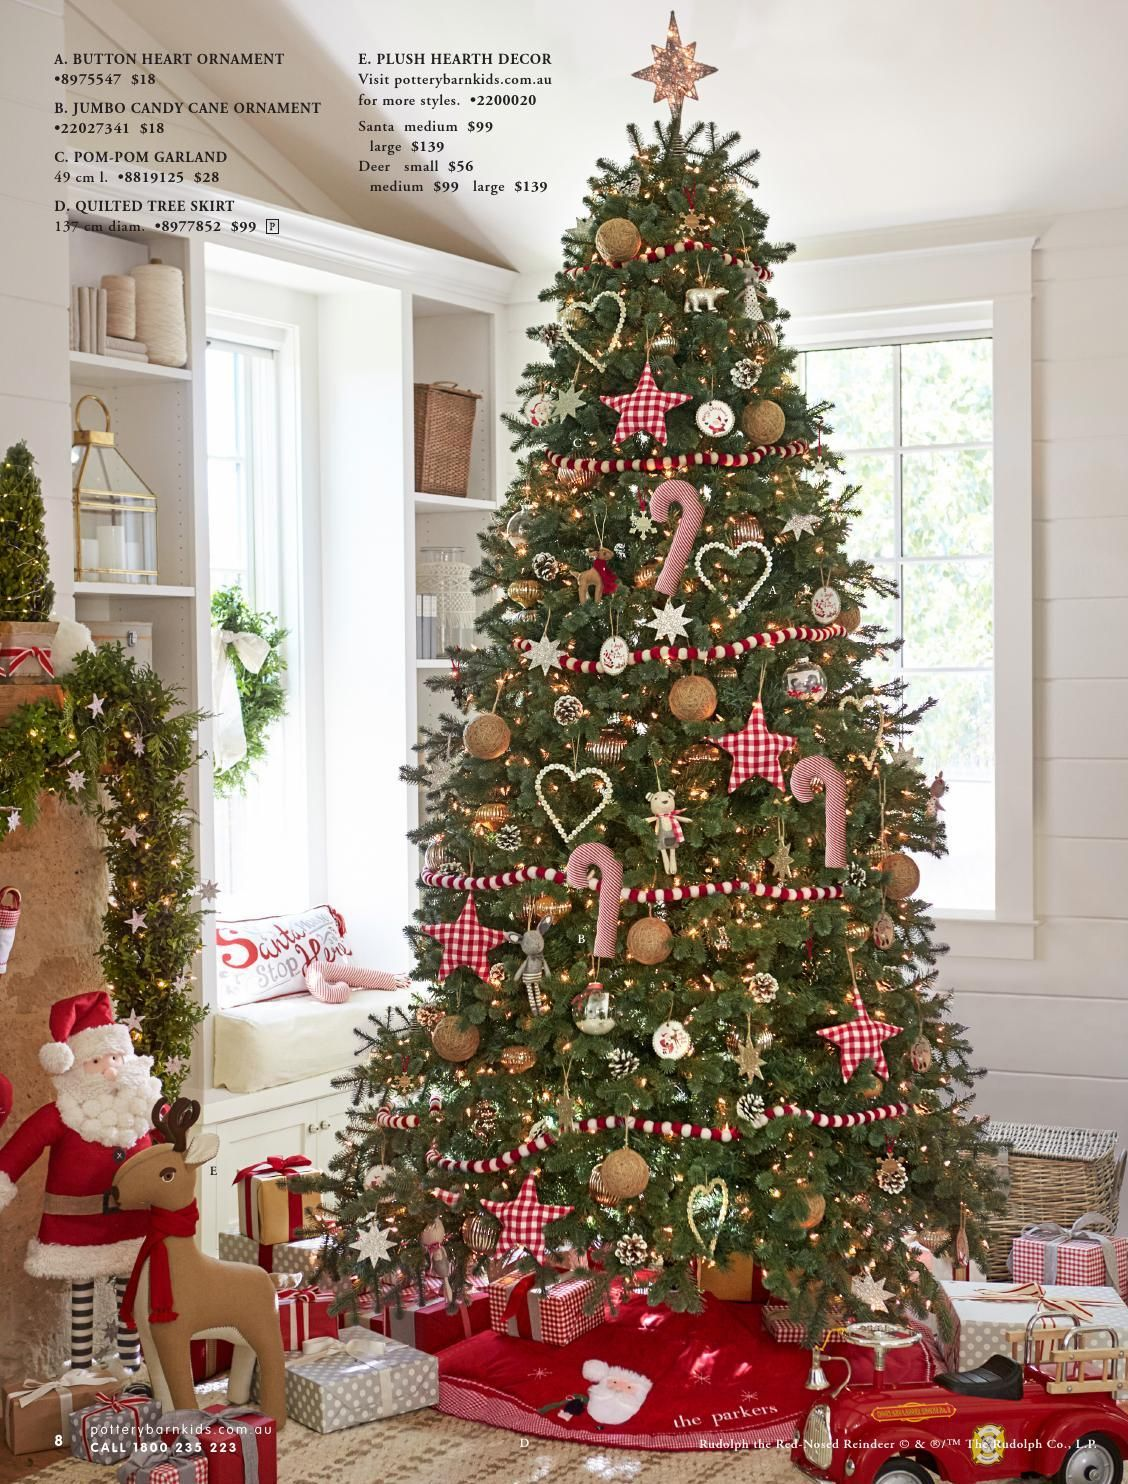 Pottery Barn Kids Australia Christmas Catalogue 2015 Christmas Tree Themes Christmas Tree Inspiration Front Door Christmas Decorations